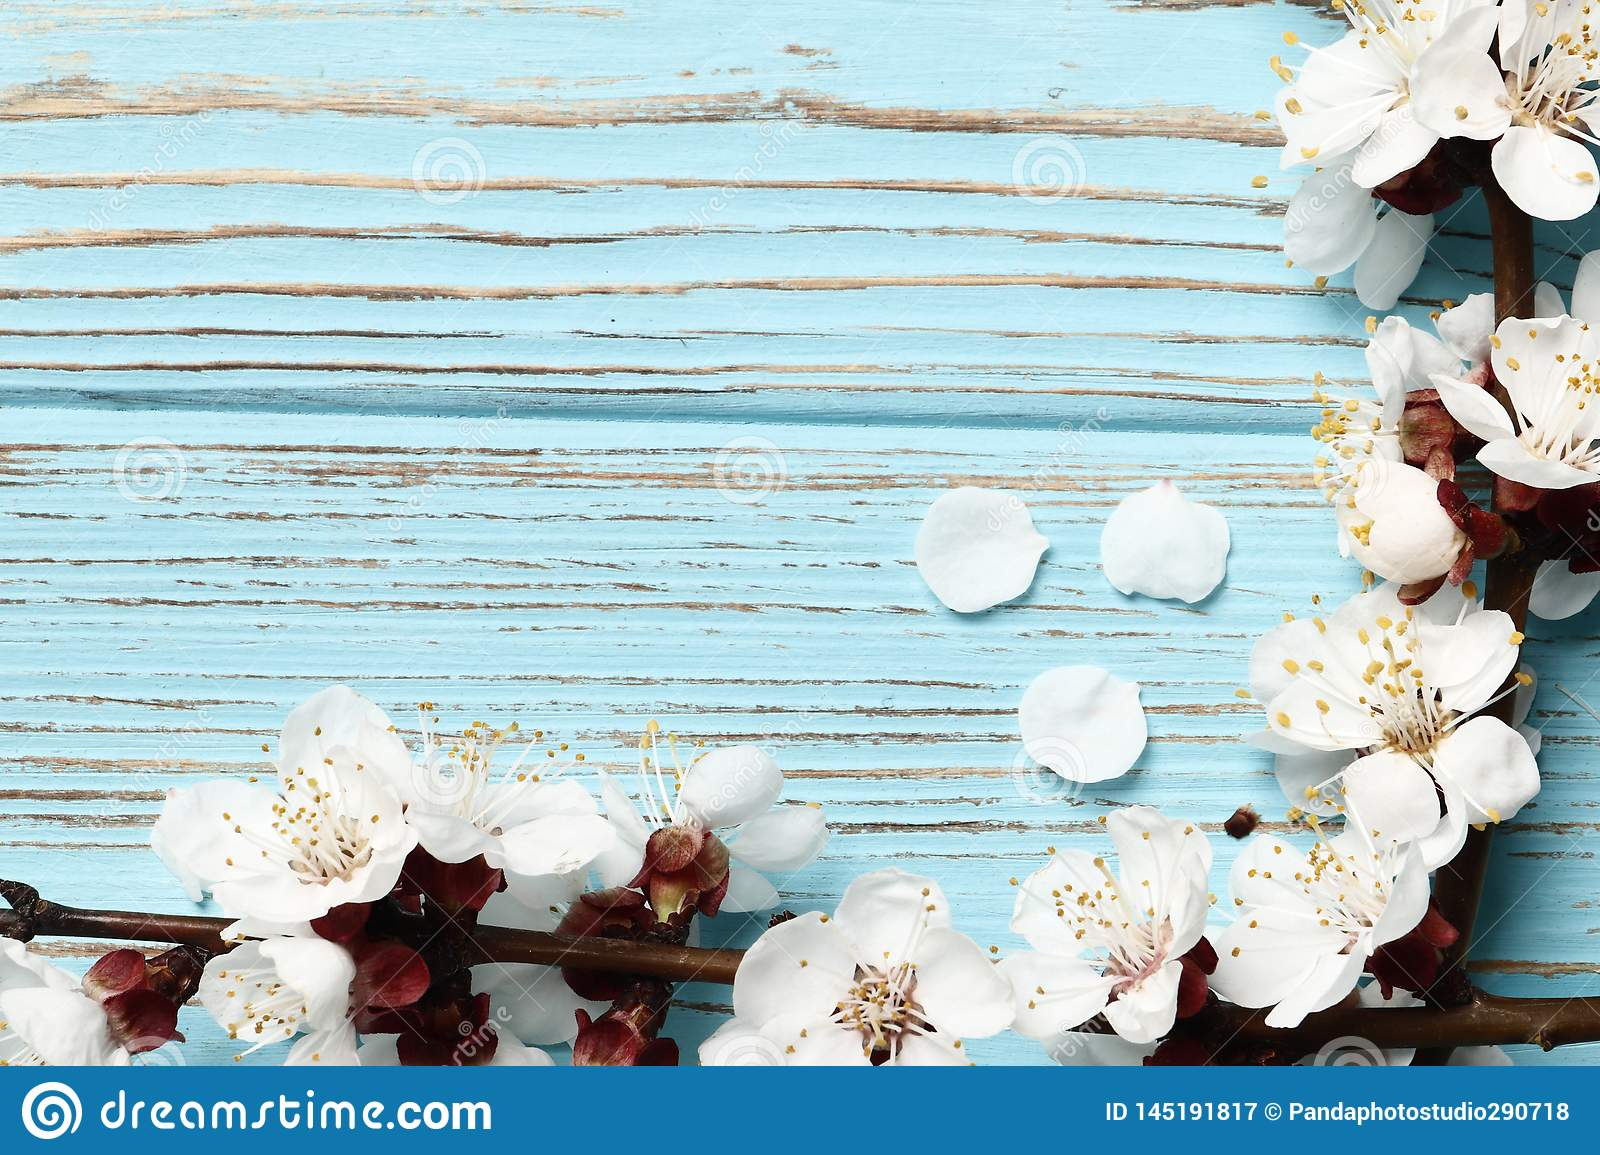 Two spring flowering branches with a lot of pink blossoms on blue wooden background